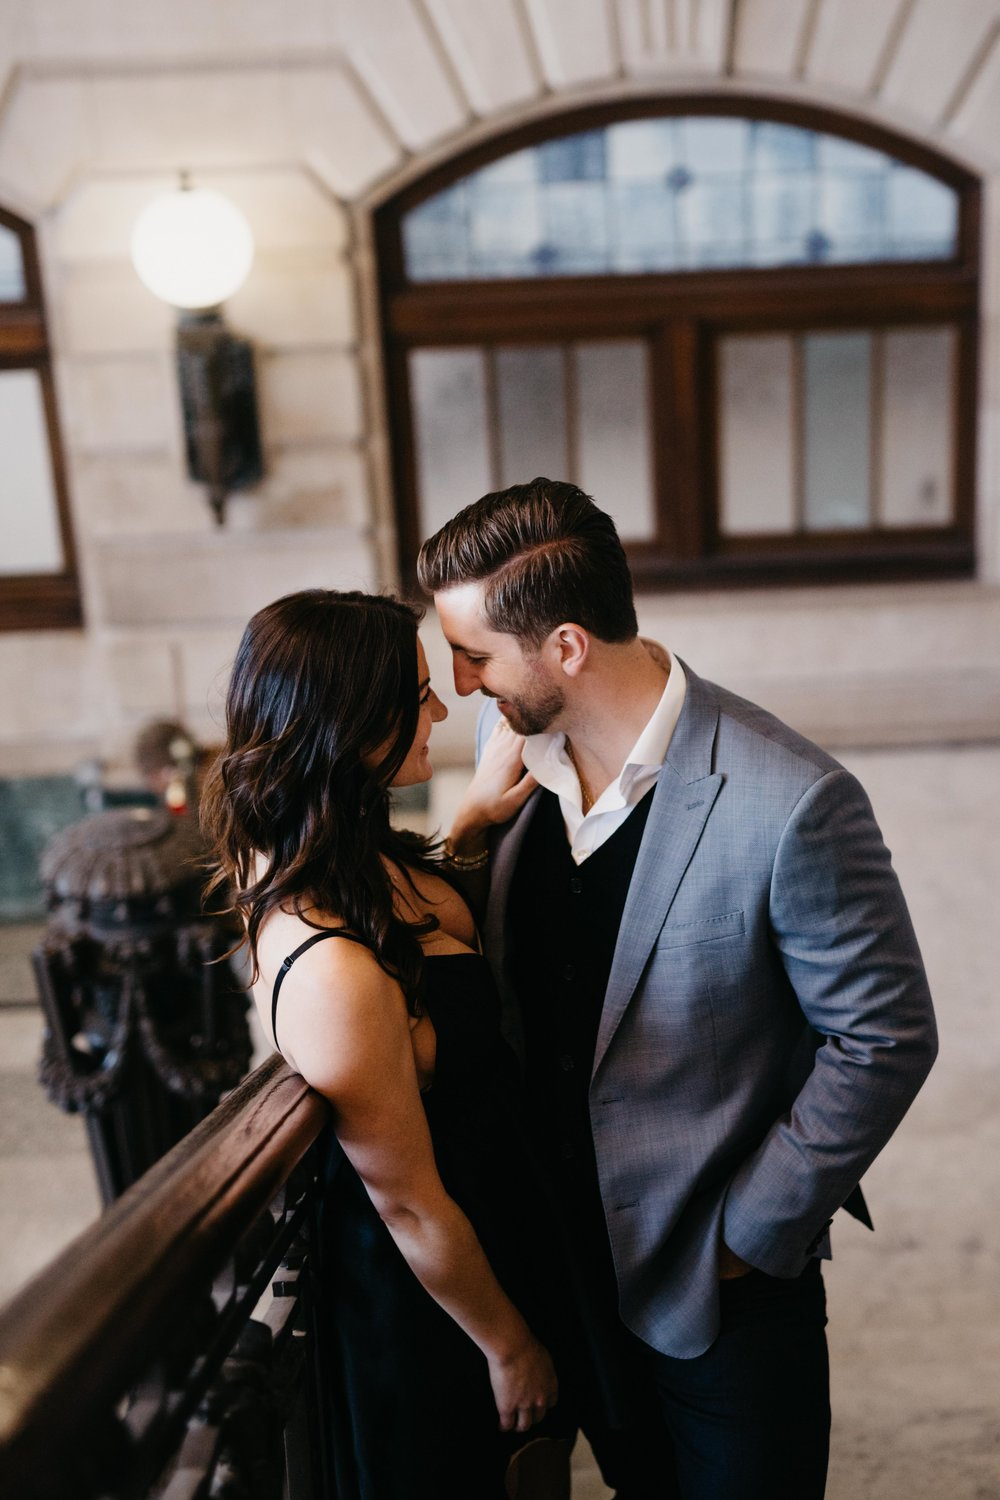 Wilde-Scout-Photo-Co-Joelle-Tyler-Jersey-City-NYC-Engagement-Session-44.jpg